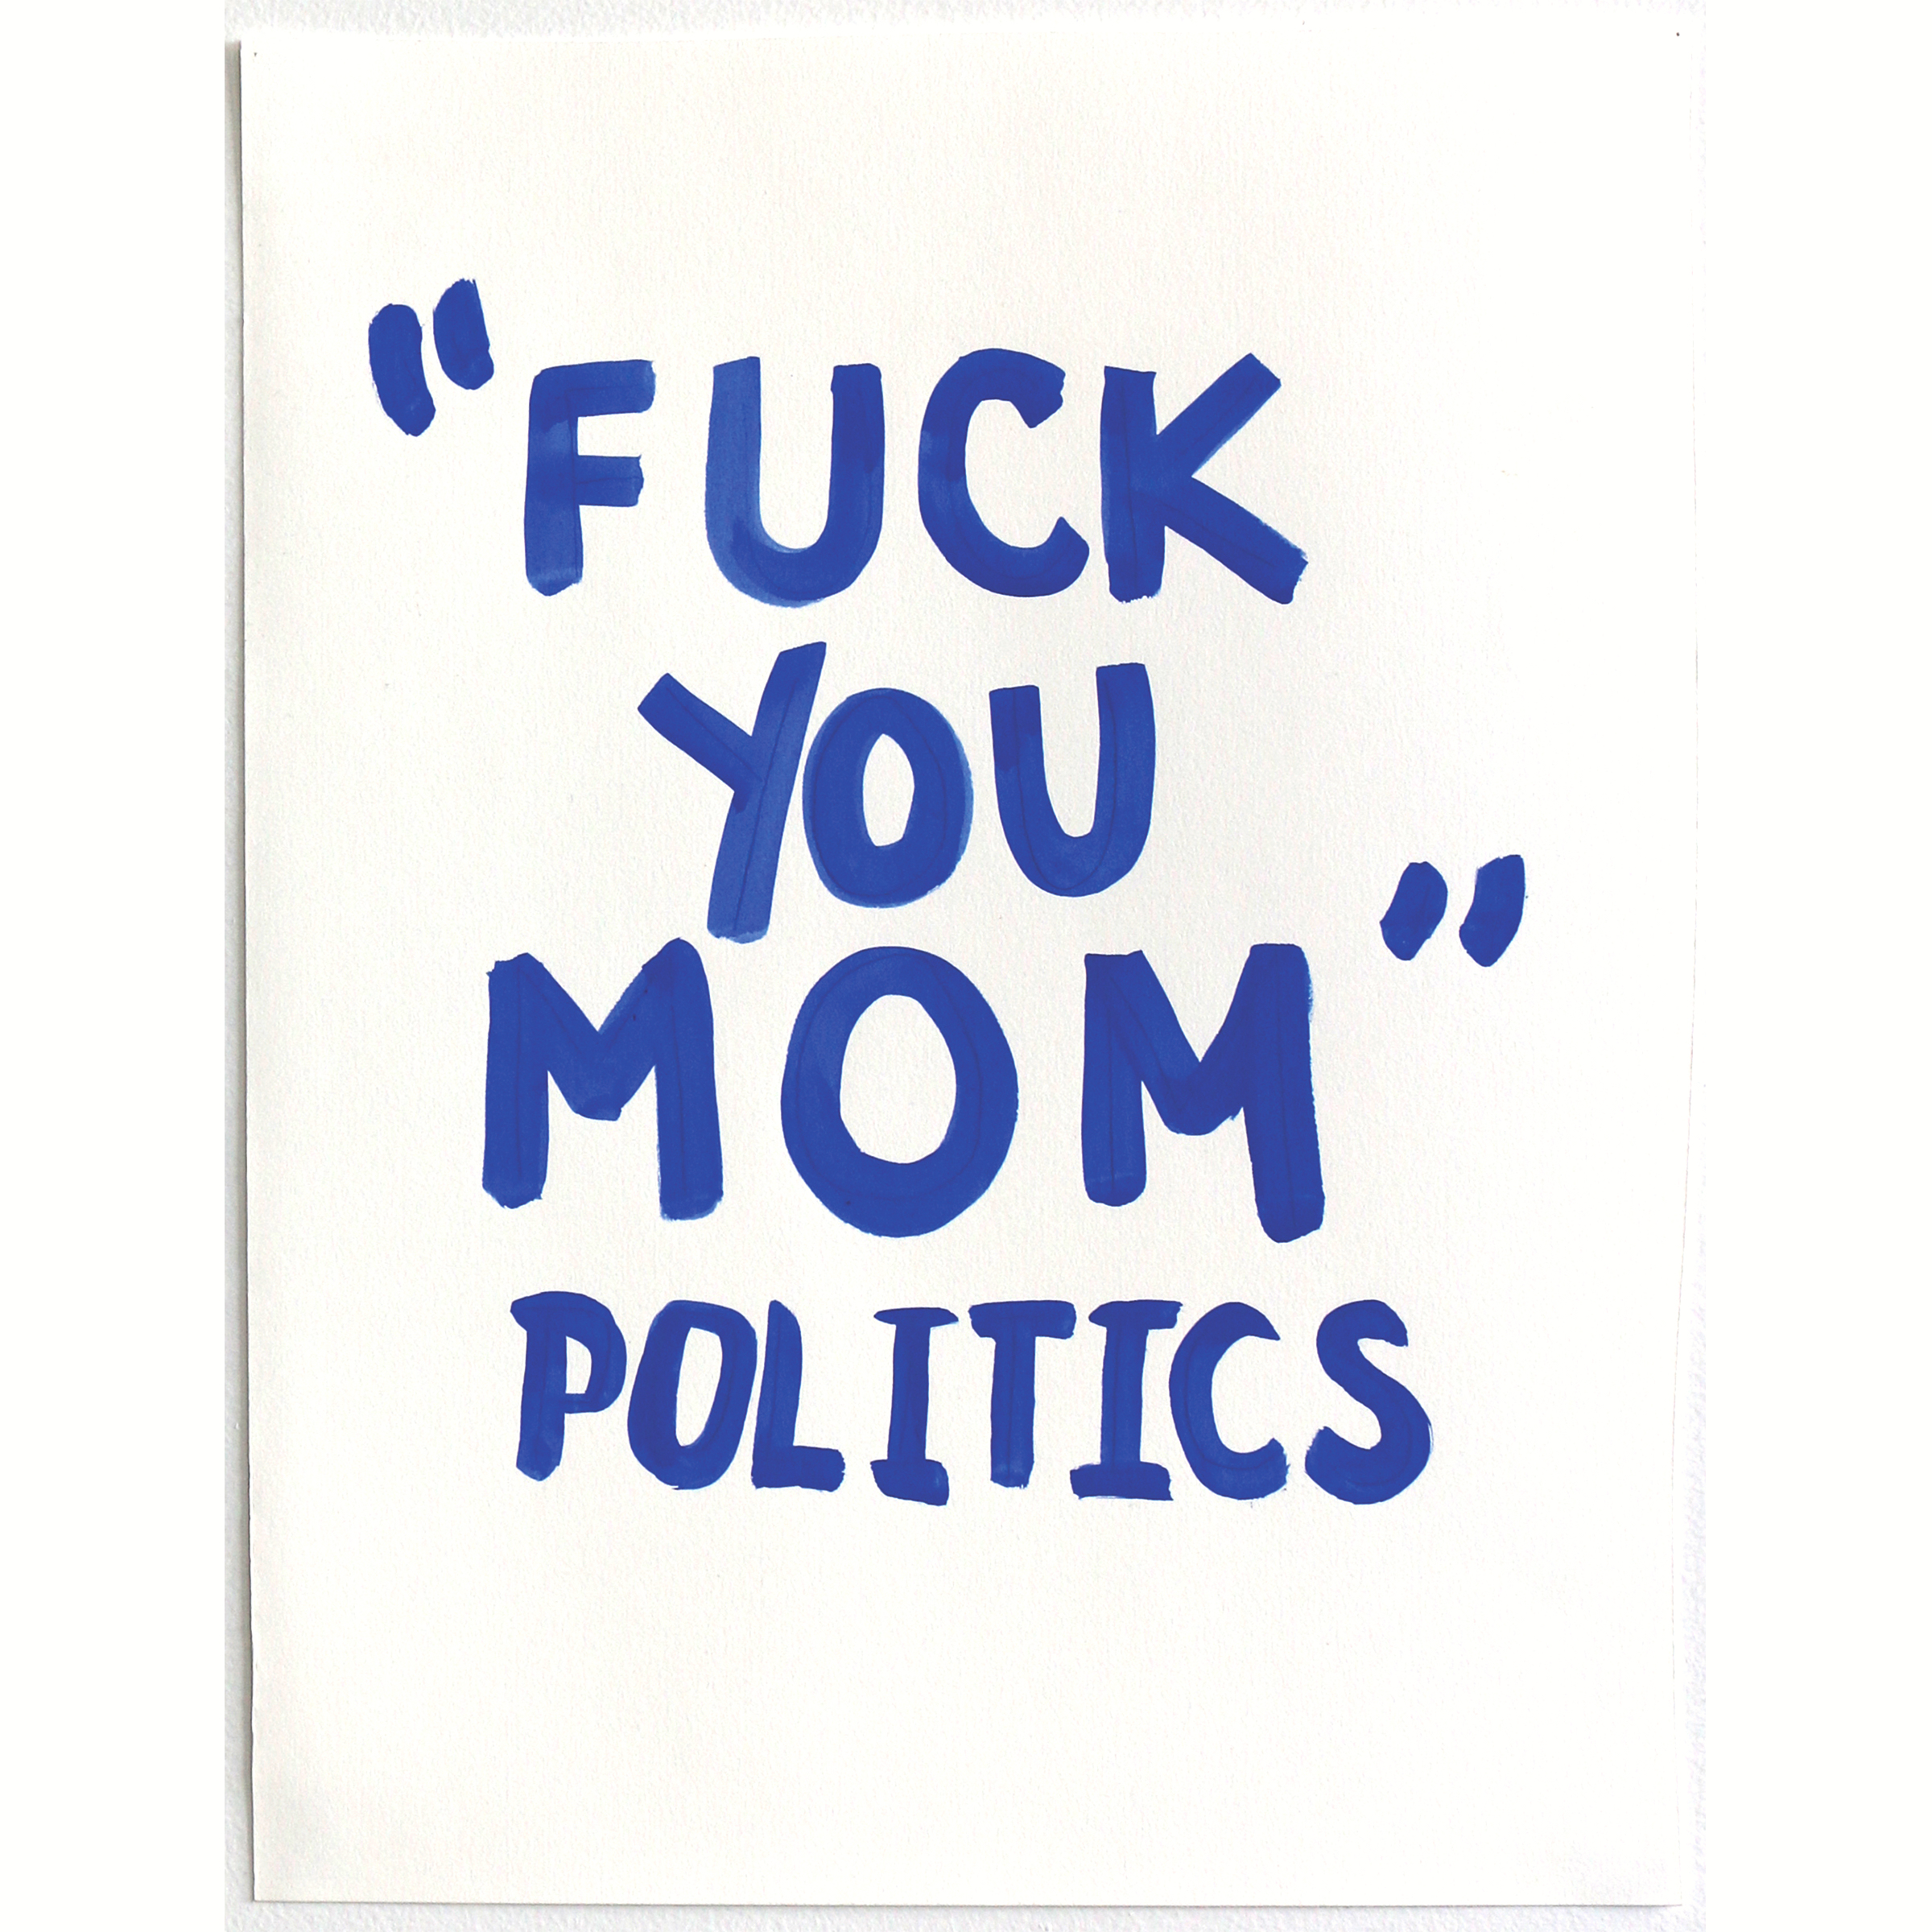 Fuck You Mom Politics   11 x 14 inches, 2015